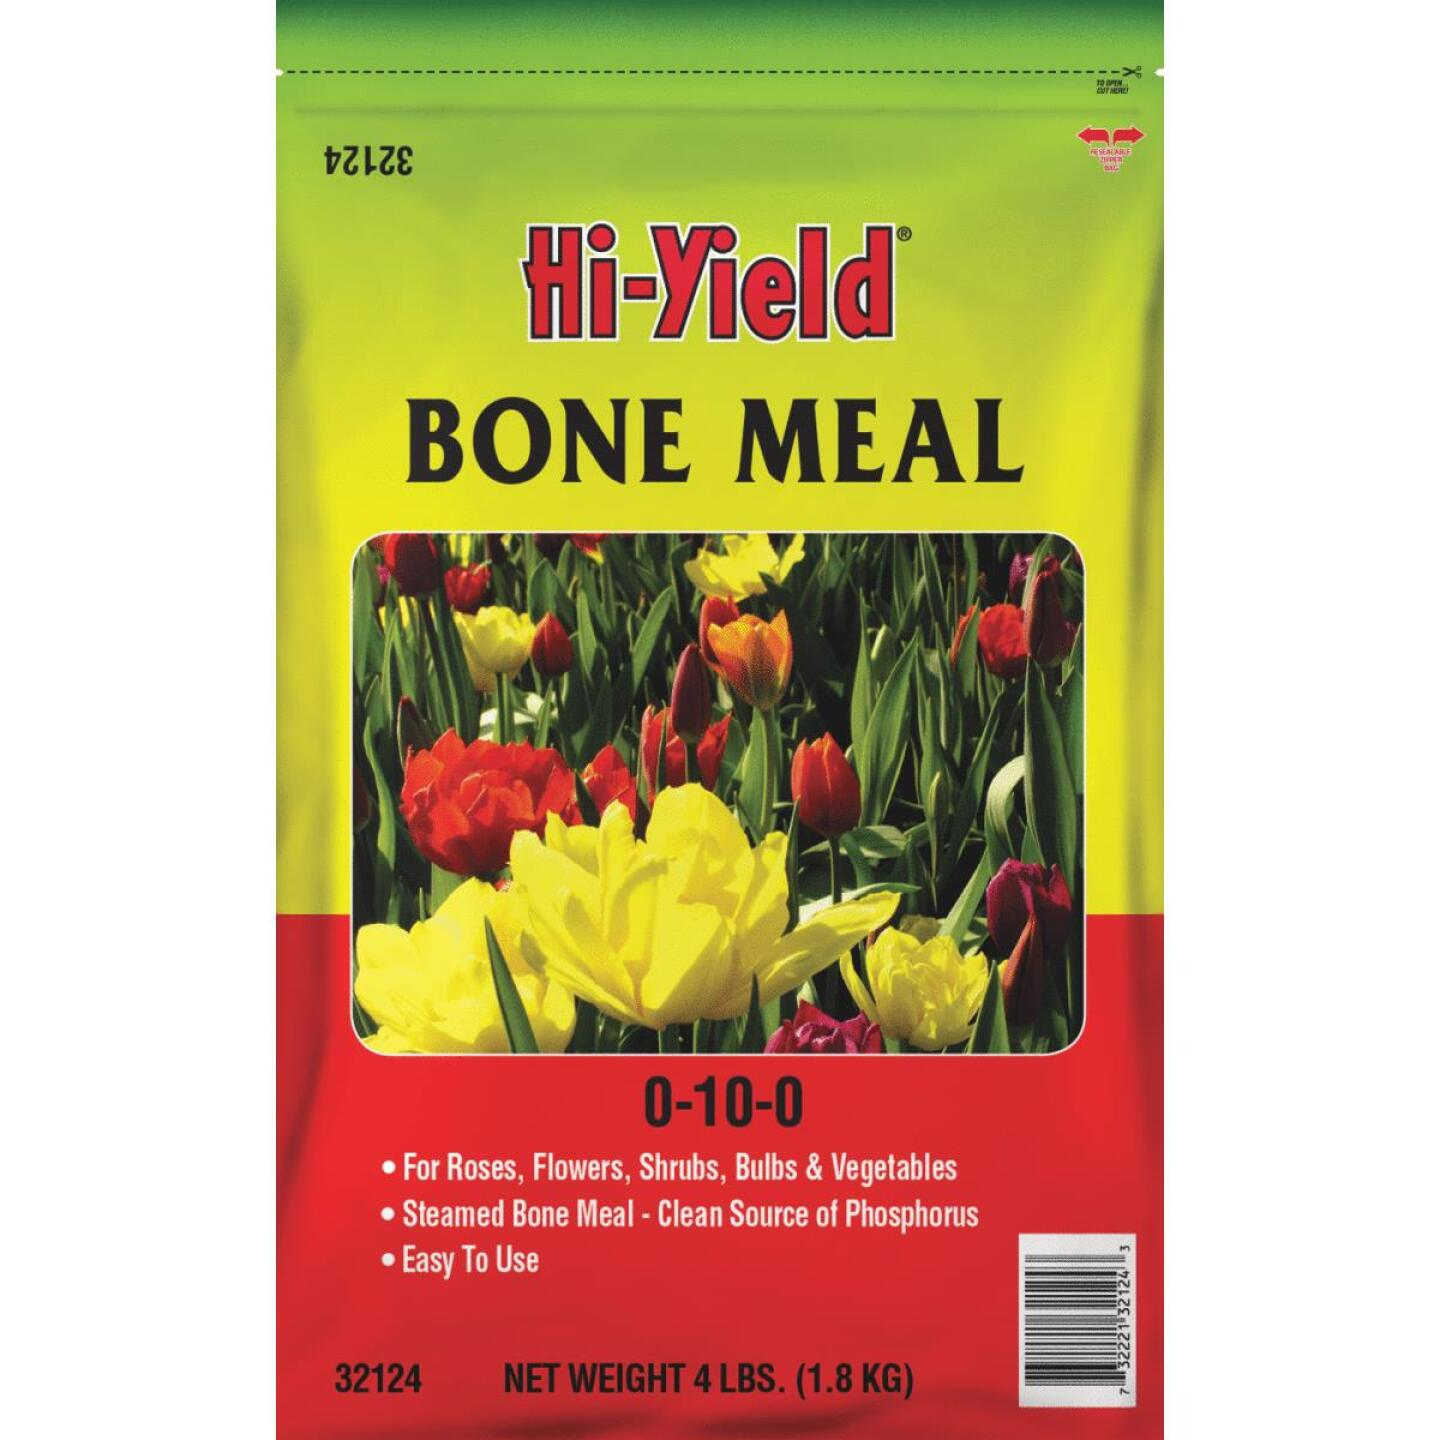 Hi-Yield 4 Lb. 0-10-0 Bone Meal Image 1